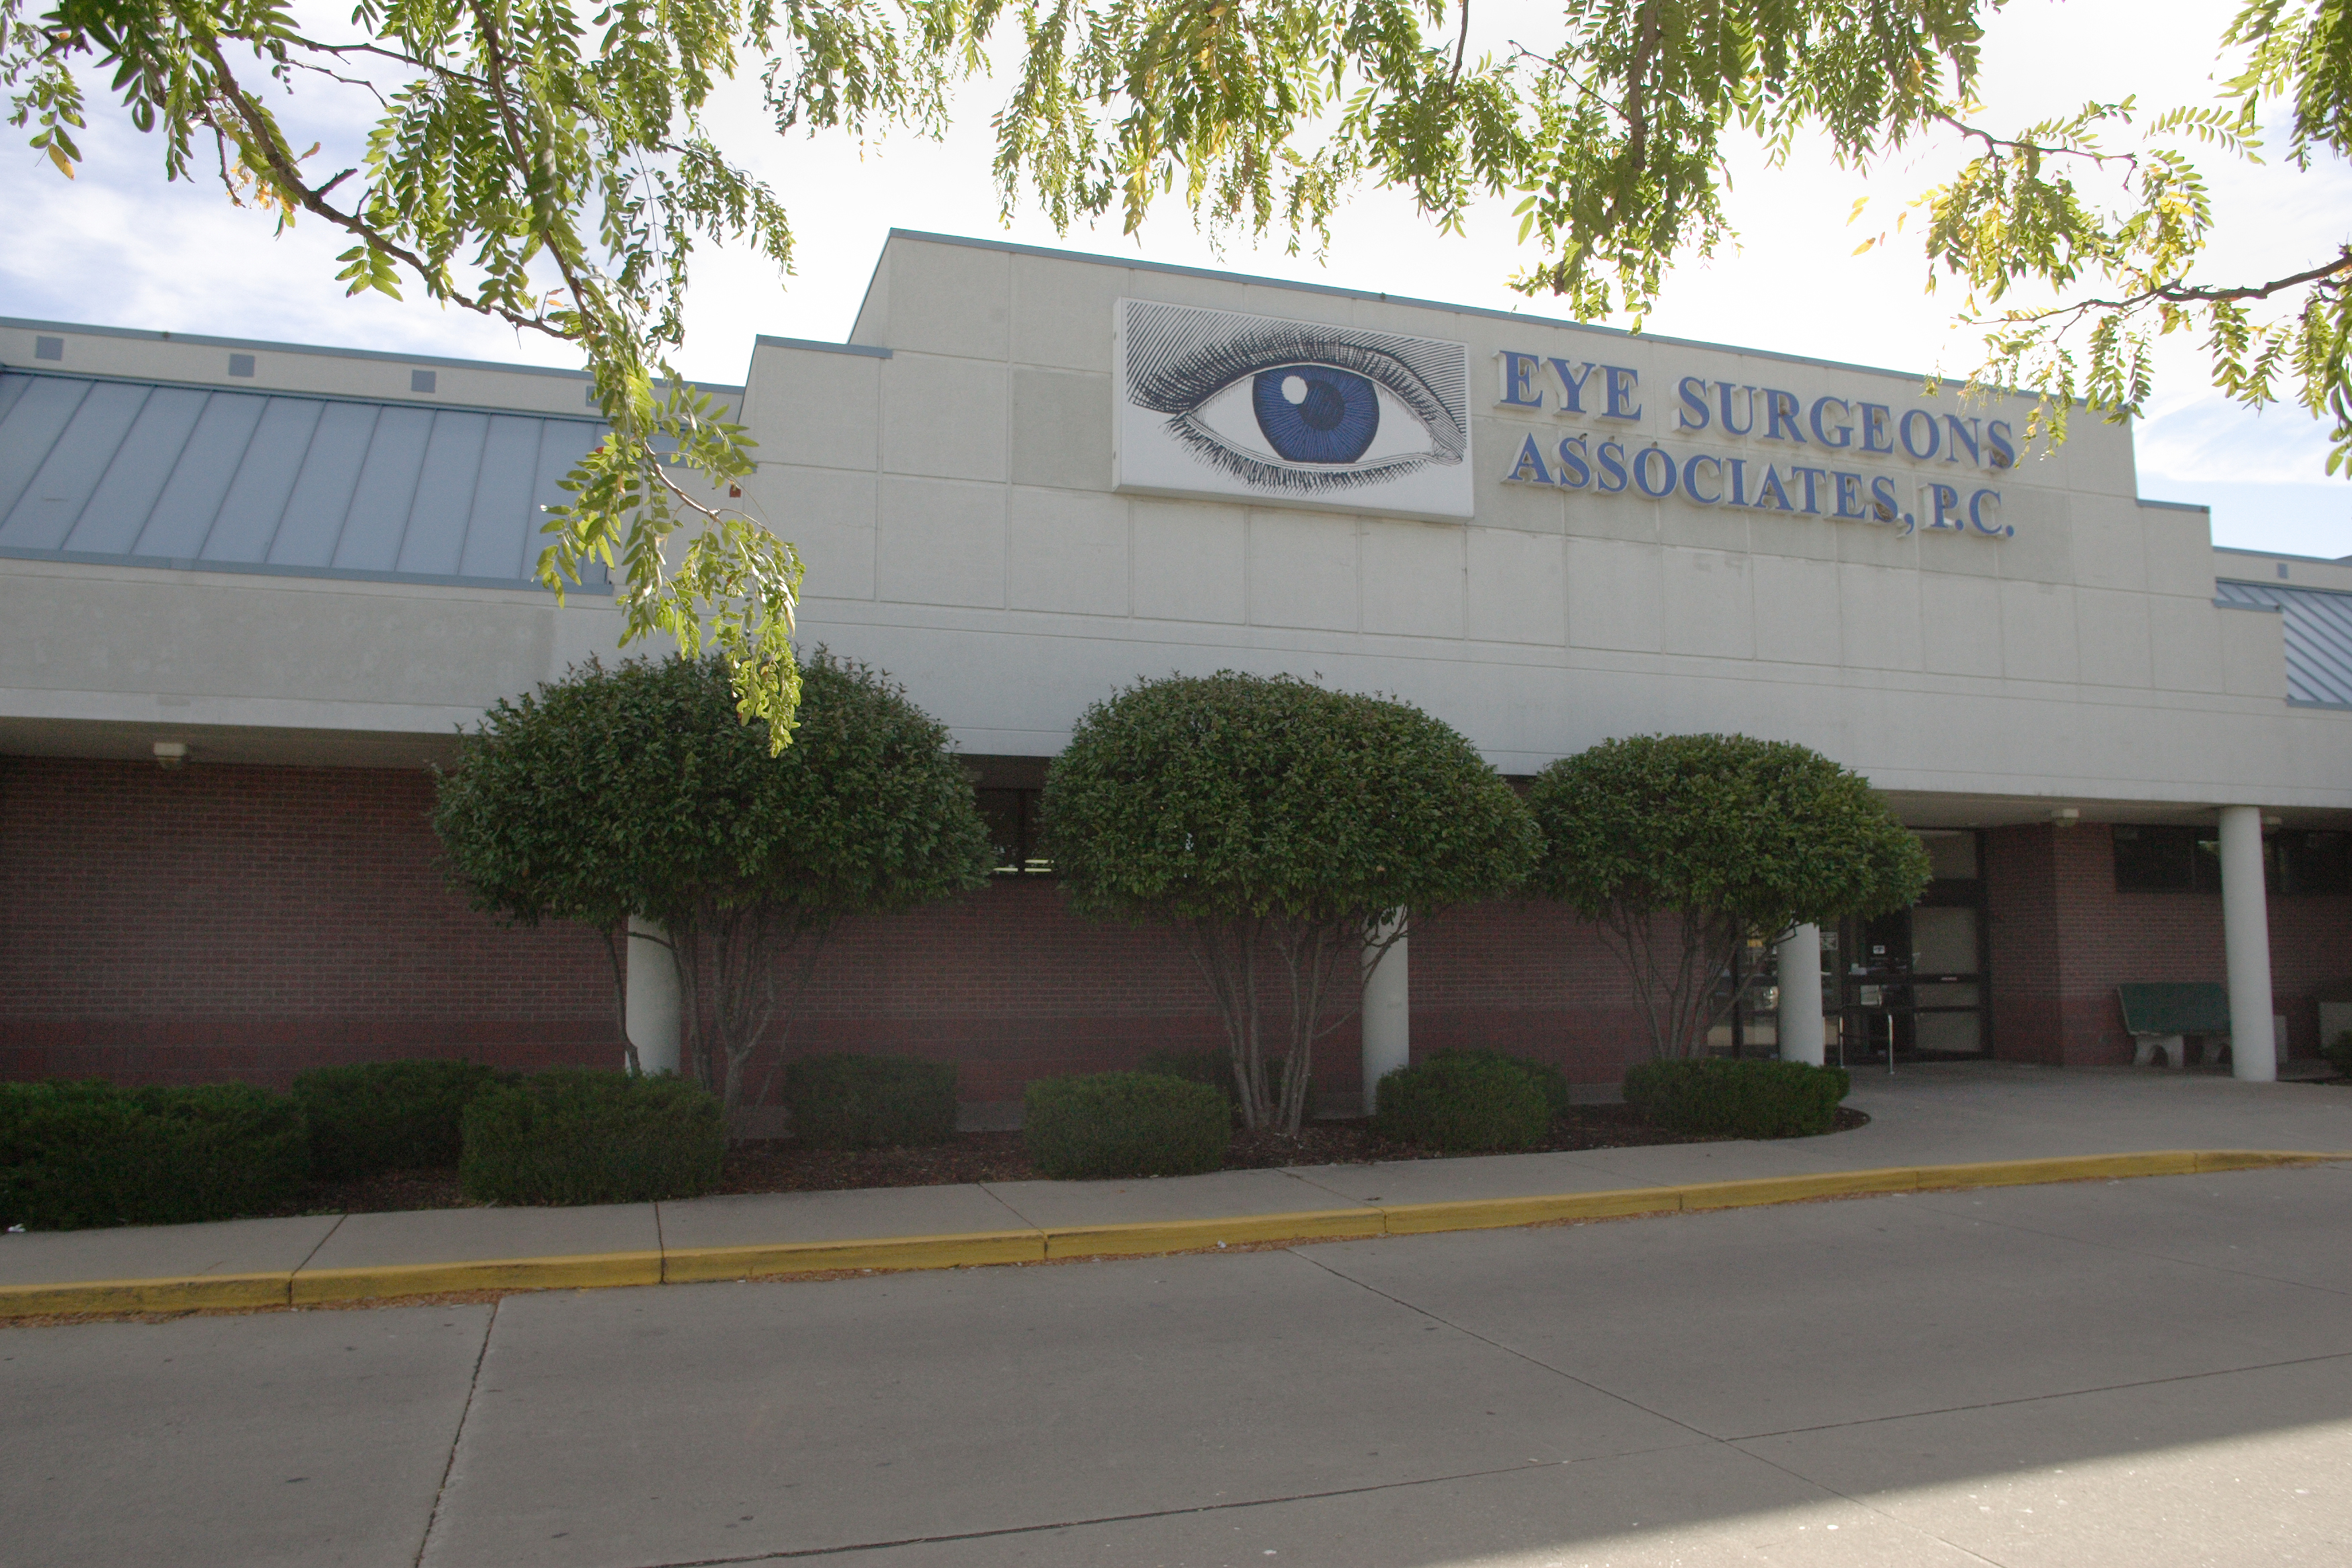 Eye Surgeons Associates reviews | Eyewear & Opticians at 2001 5th St - Silvis IL